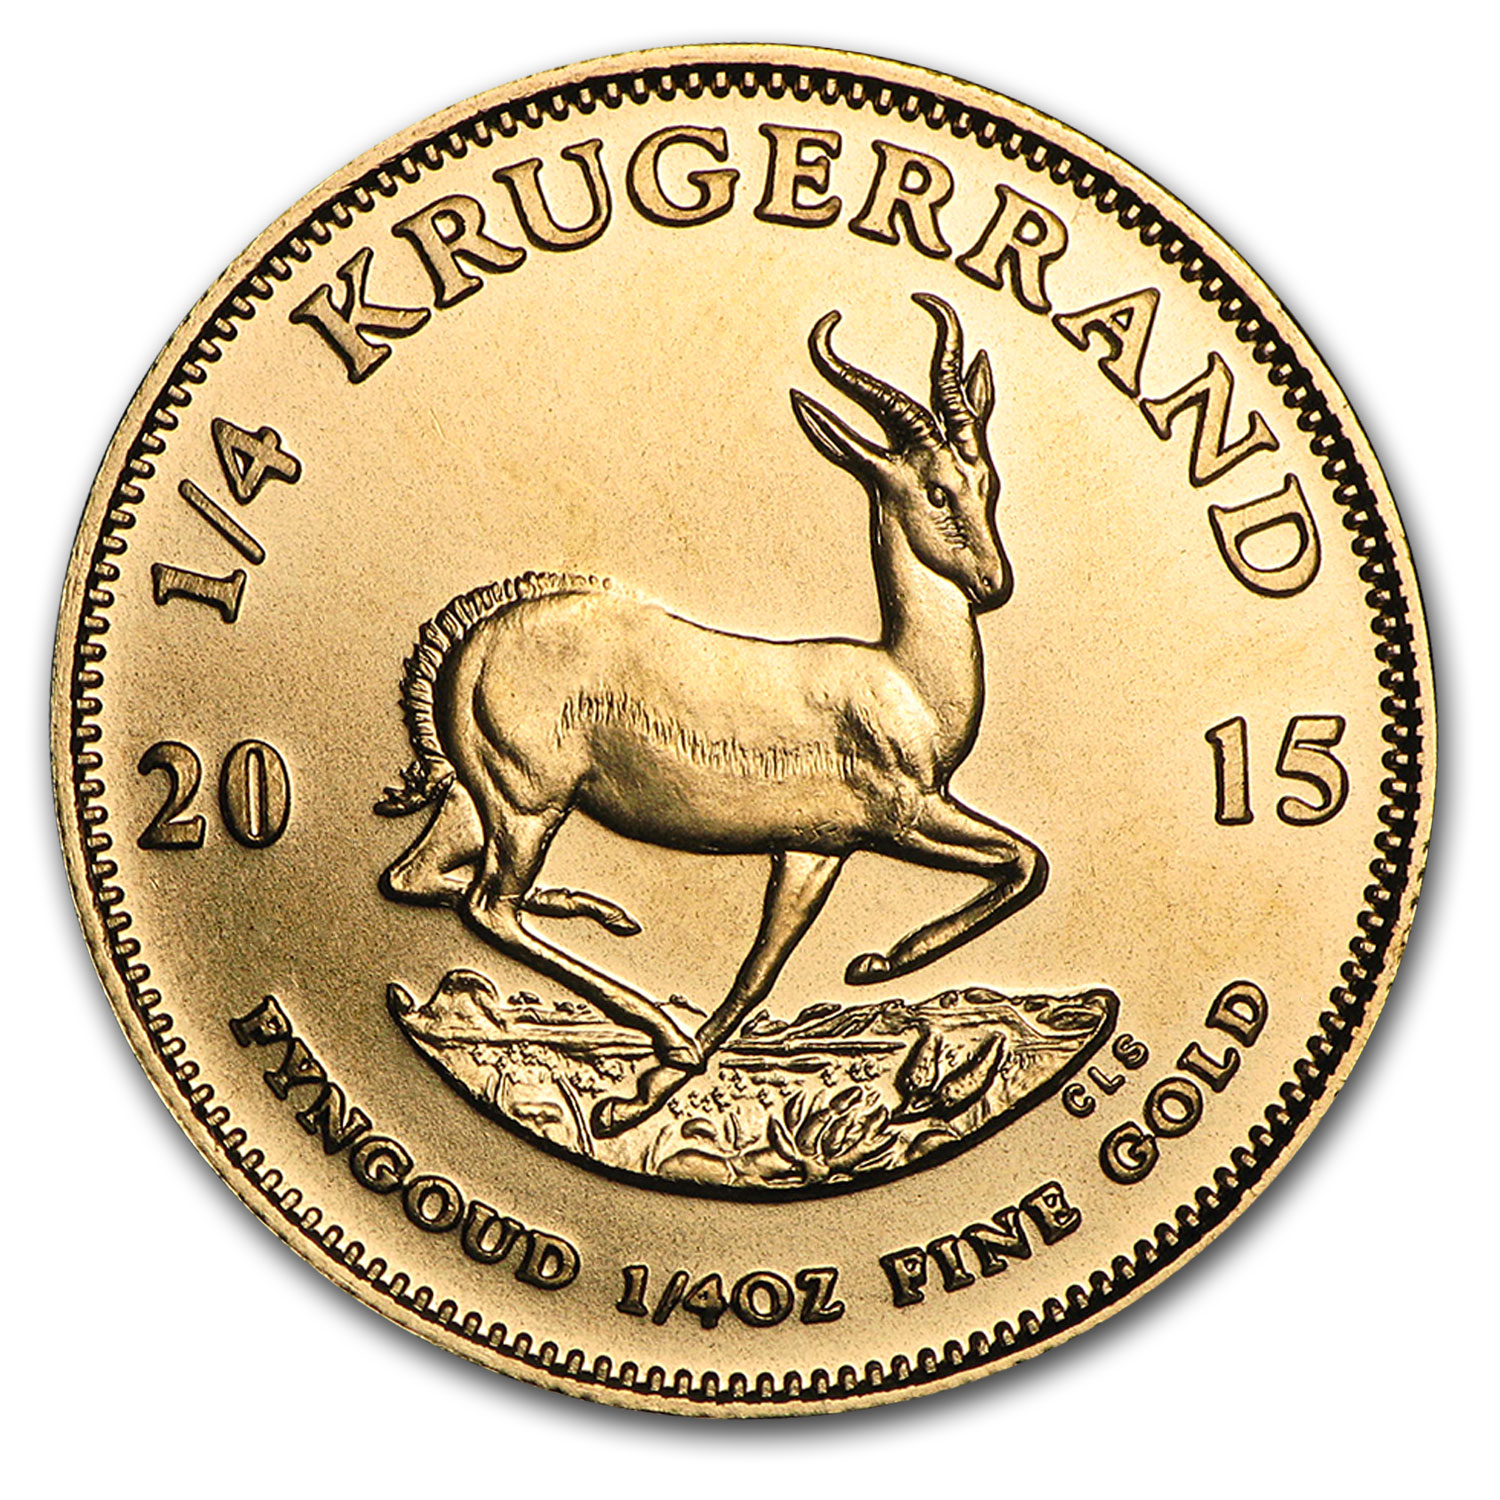 2015 South Africa 1/4 oz Gold Krugerrand